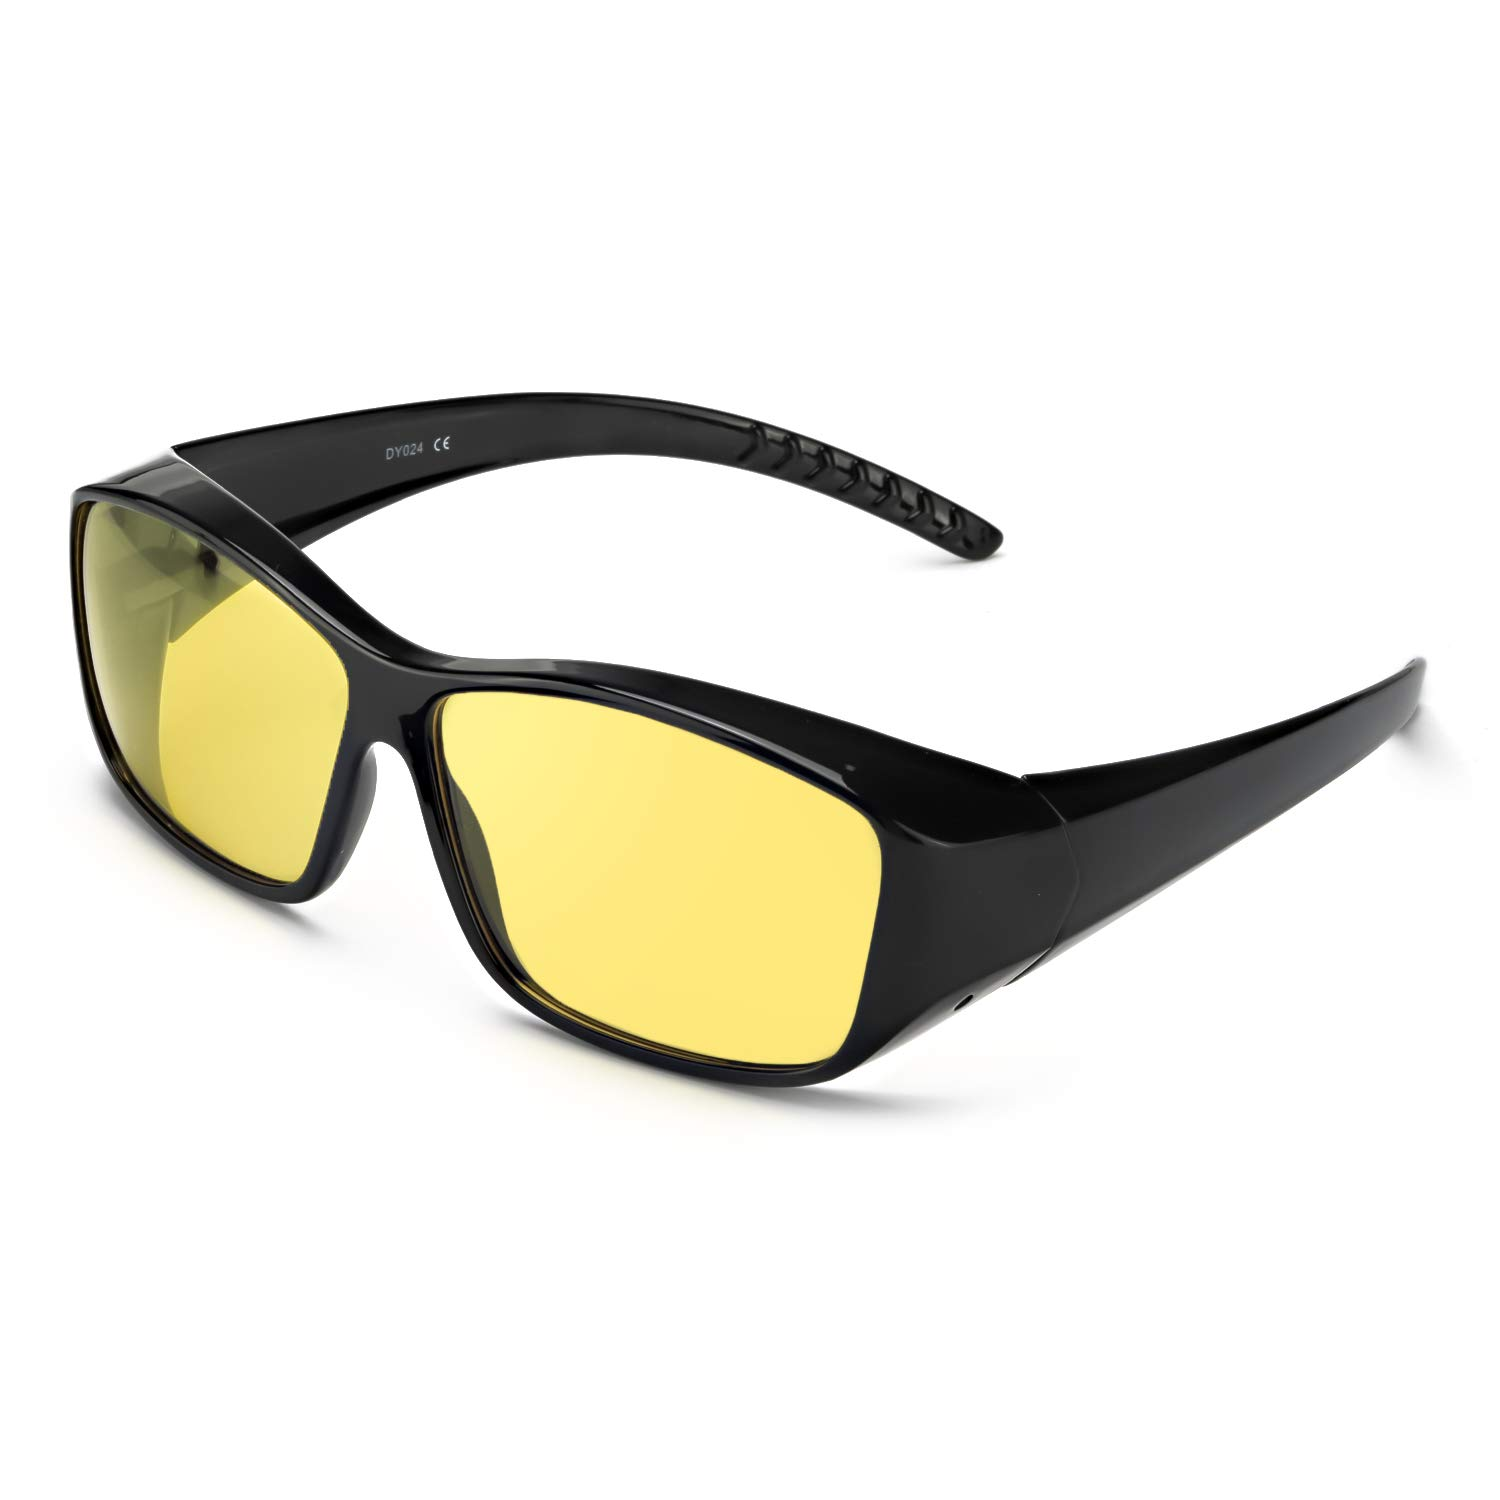 3b4fe0b523c Amazon.com  LVIOE Wrap Around Night Vision Glasses